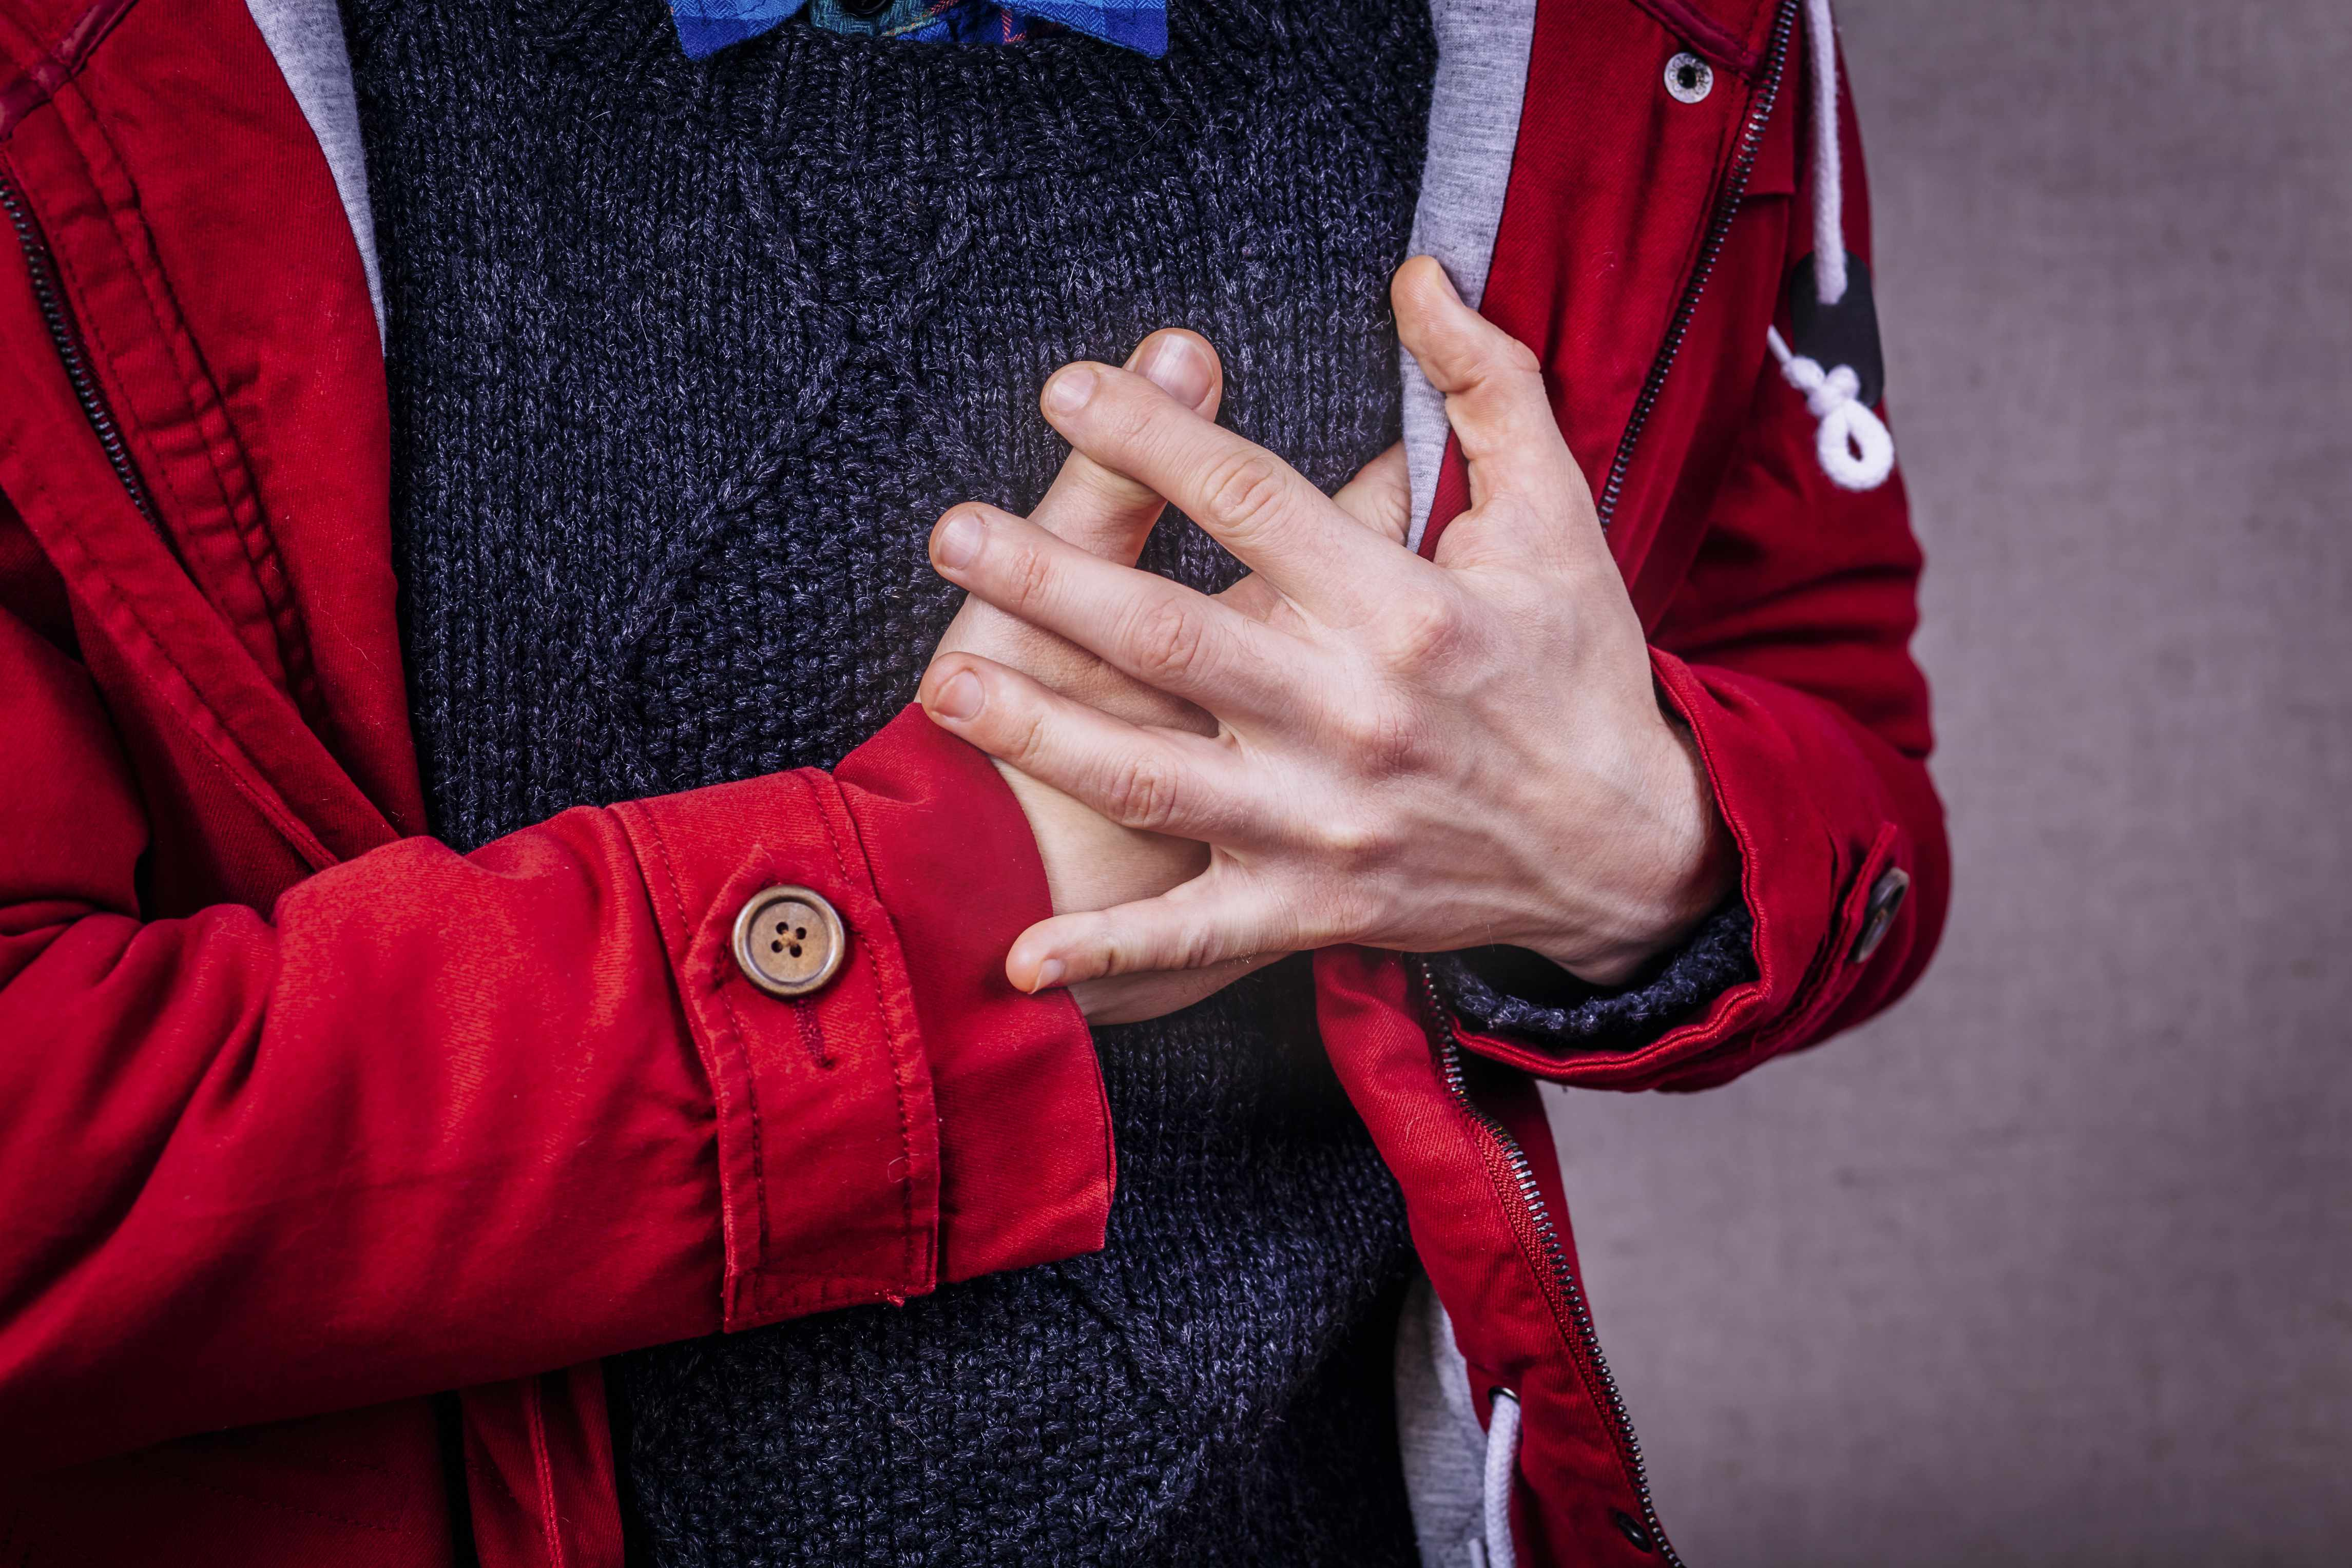 a person in a red coat holding chest with pain, perhaps a heart attack